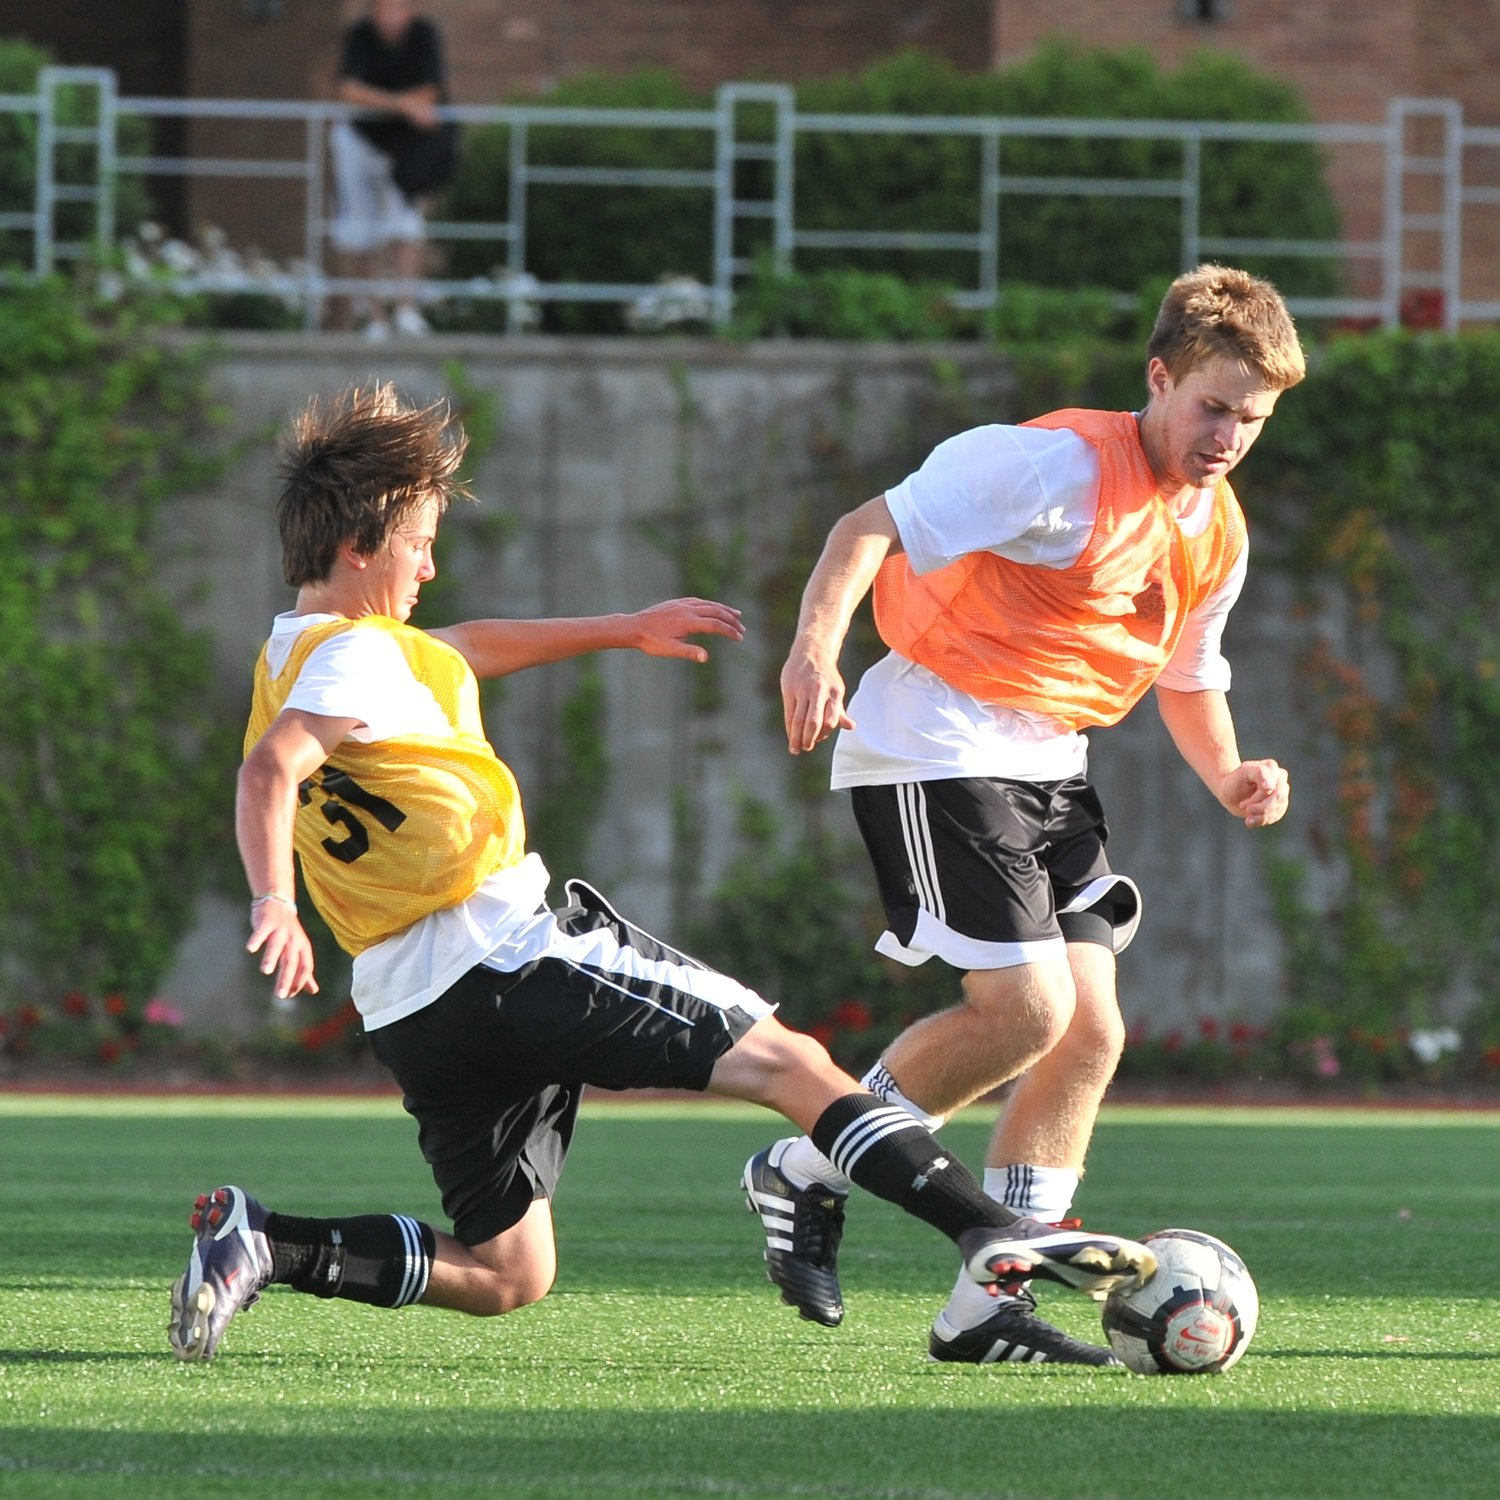 Free Soccer Recruiting Resources | College soccer camps